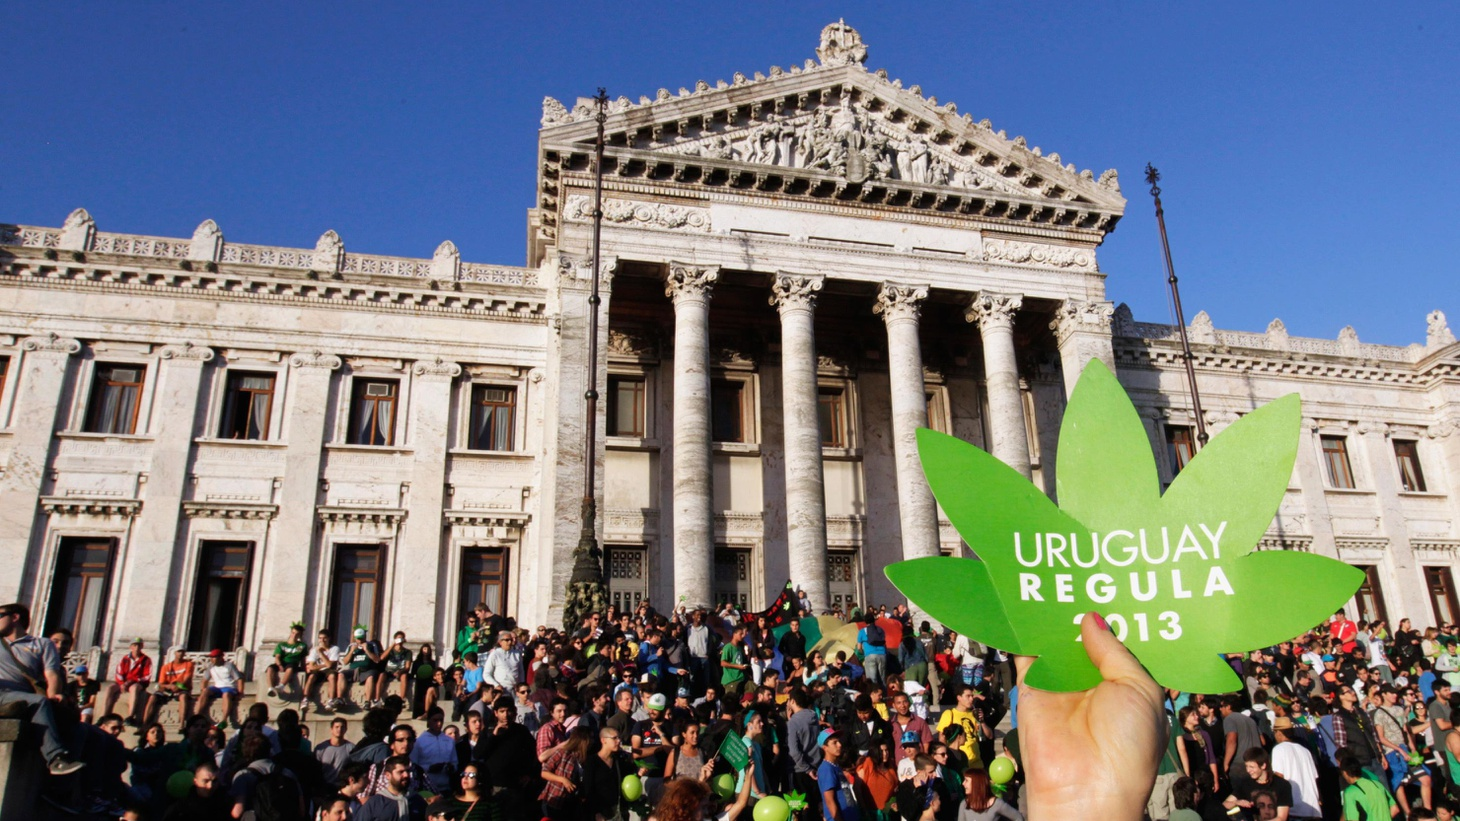 Colorado and Washington have legalized marijuana. Now Uruguay in South America is the first nation to do so. Is the 50-year-old war on drugs a trillion-dollar failure?